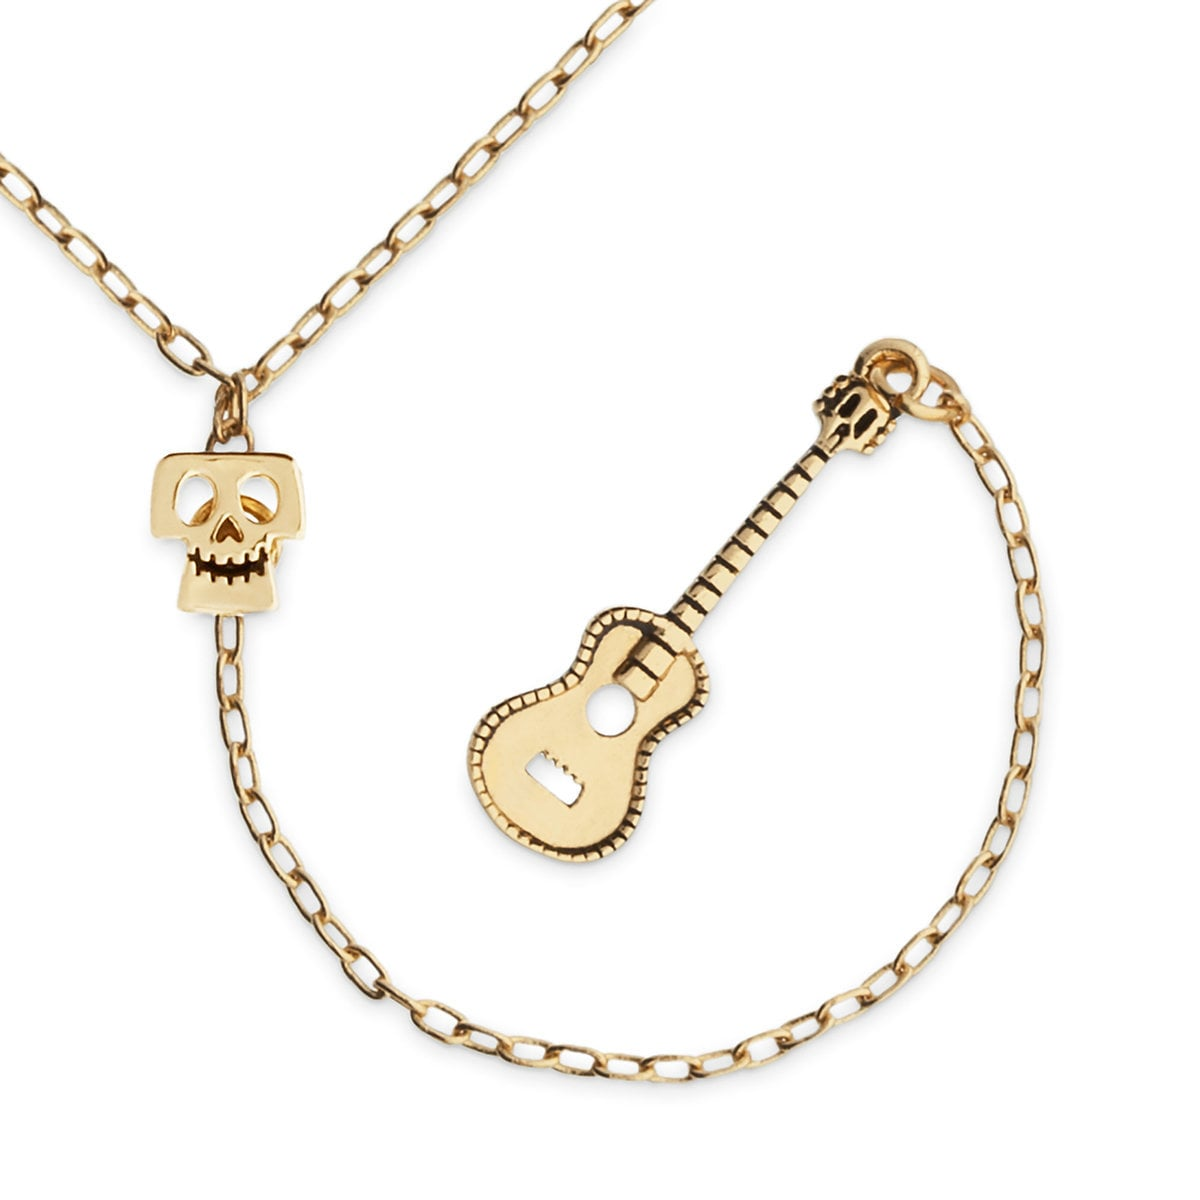 pendant guitar claire jack s necklace union